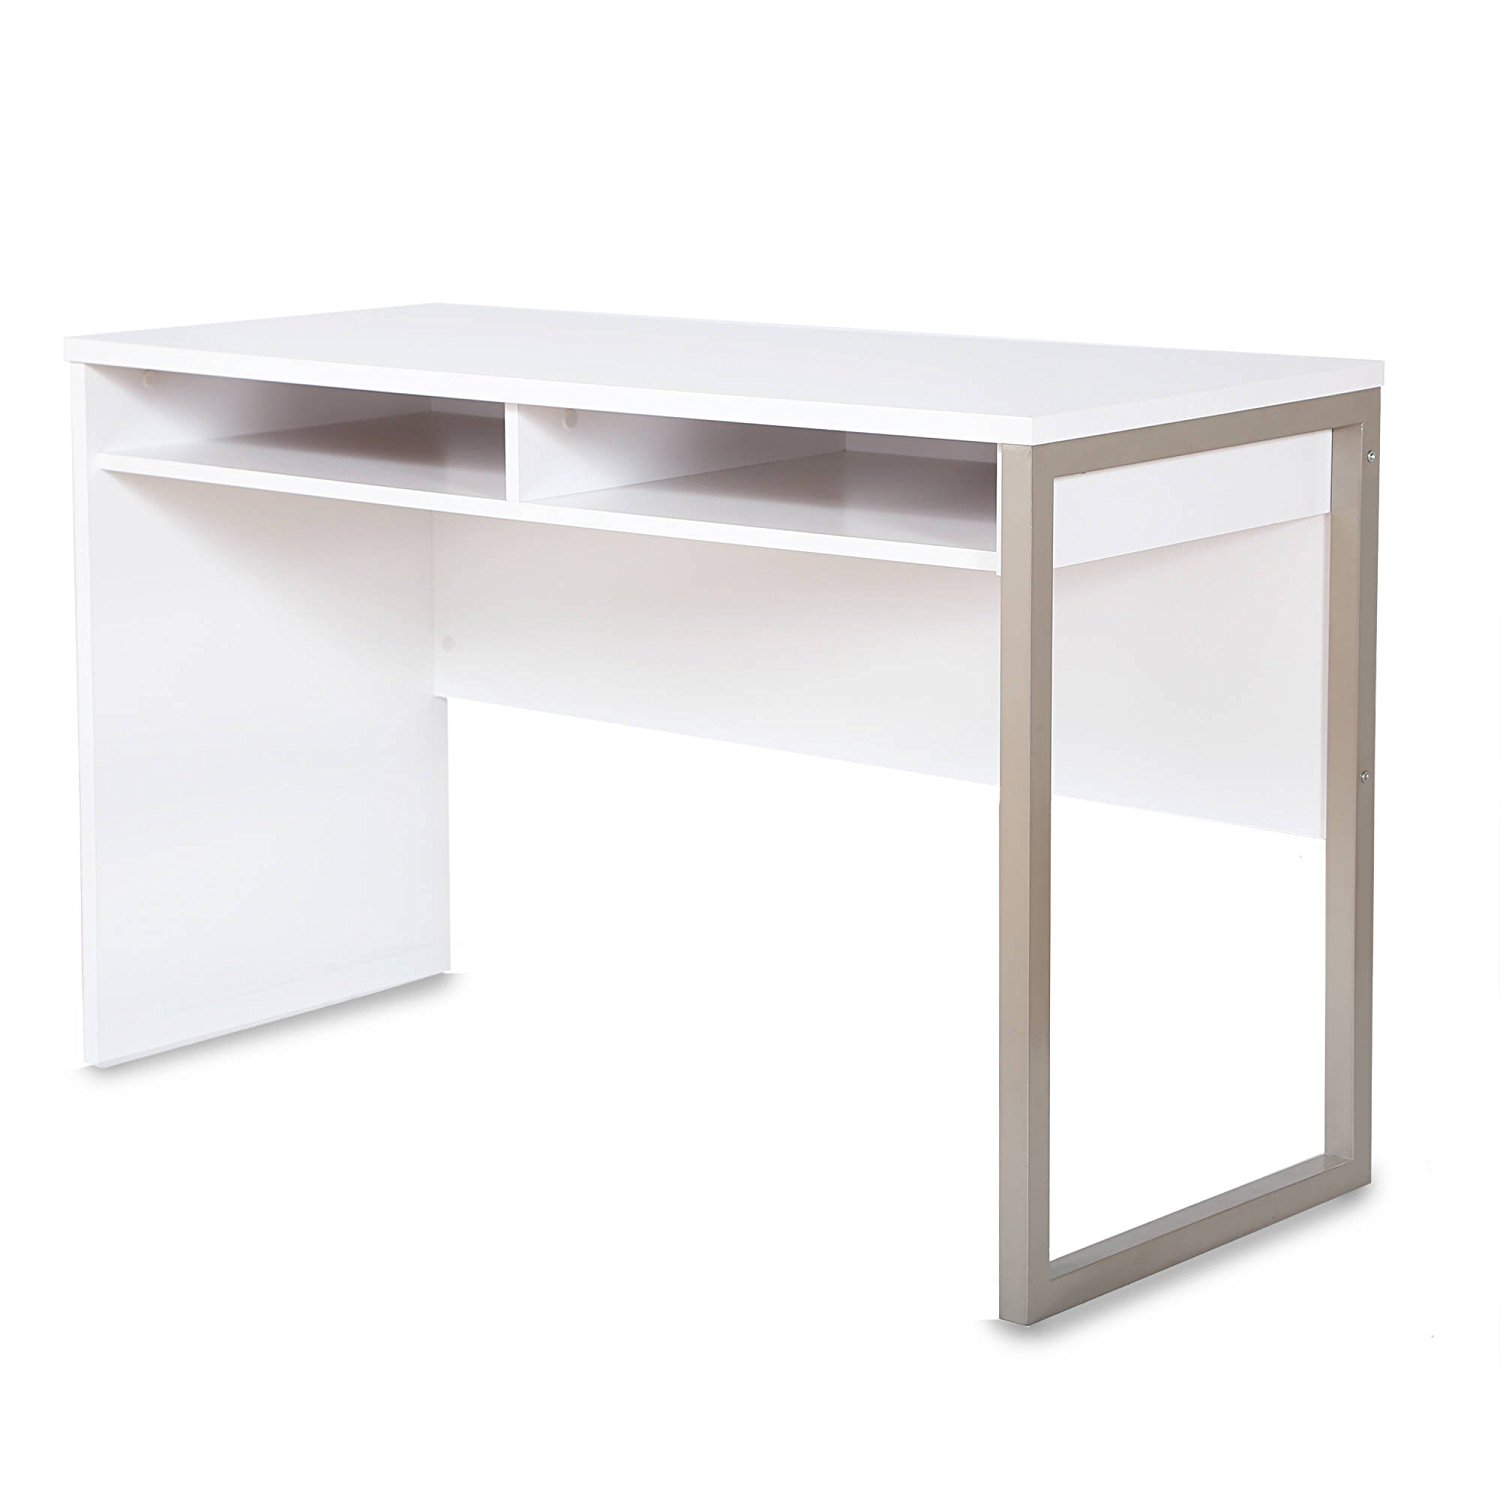 Elegant Modern Style Desk, Features Beautiful Metal Leg Support and Light-Colored Finish, Enhance Your Room, Includes Two Open Storage Spaces, Sturdy Construction, Pure White + Expert Guide